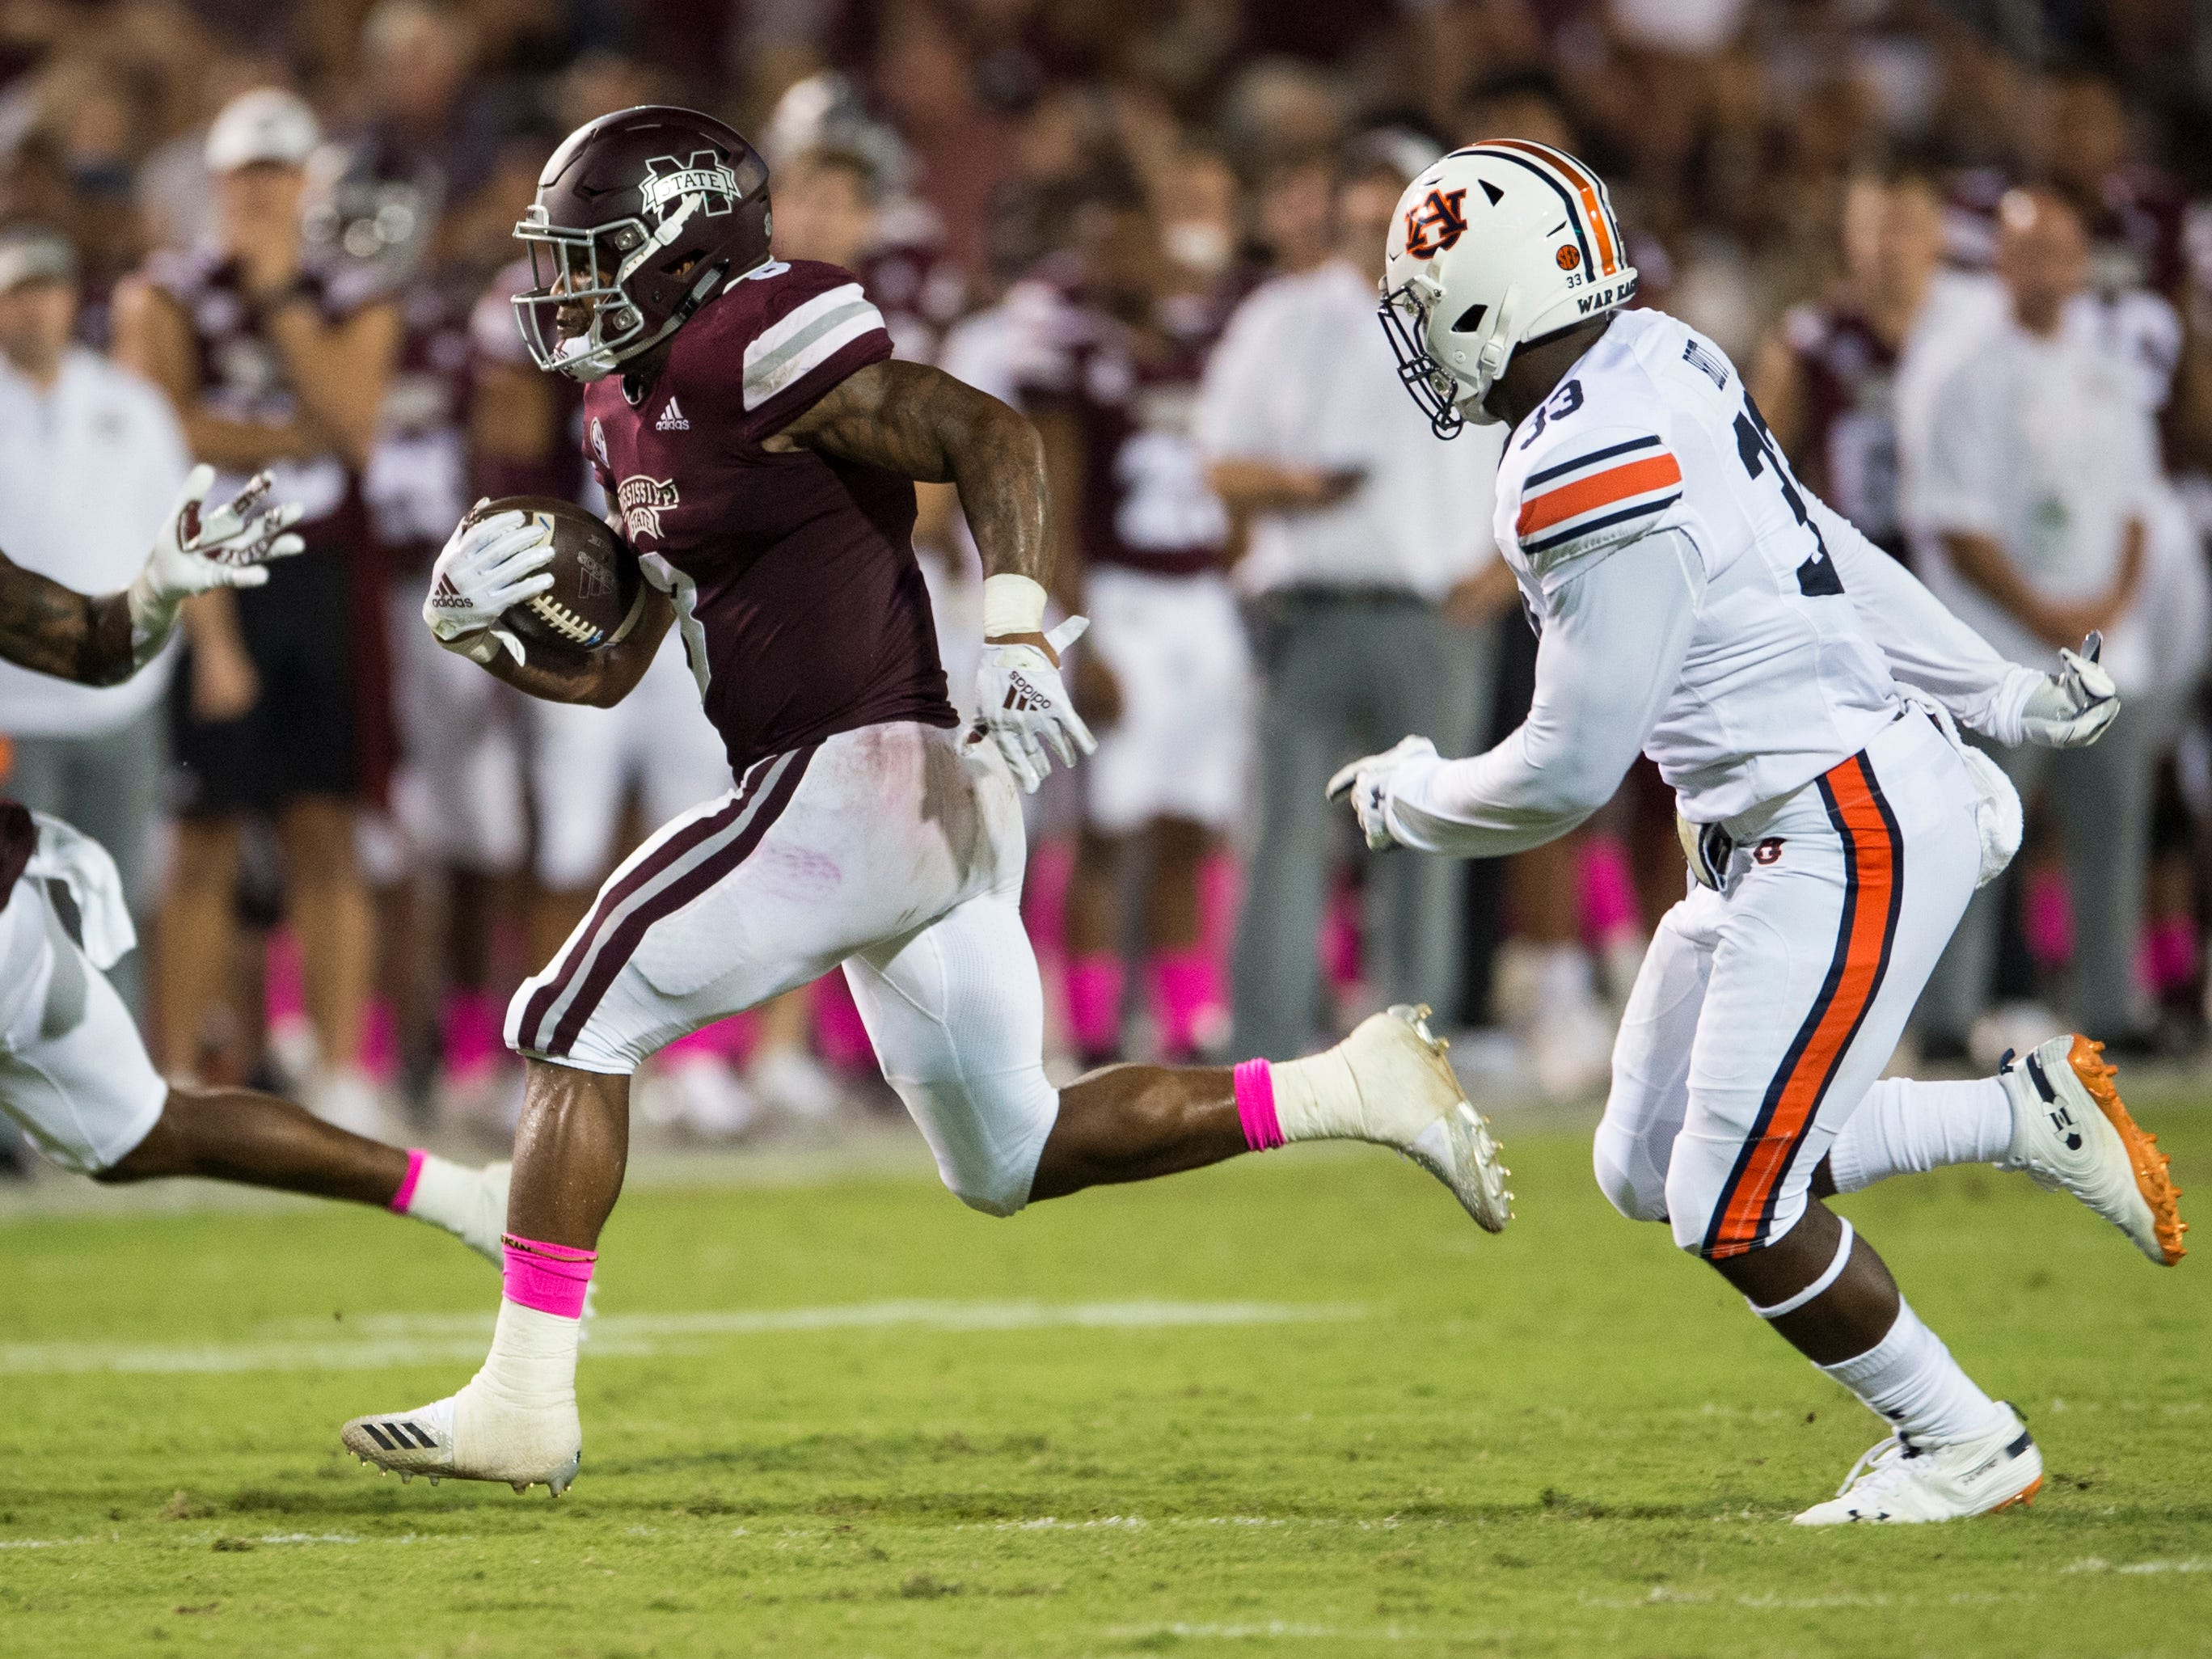 Mississippi State's Kylin Hill (8) runs the ball against Mississippi State at Davis Wade Stadium in Starkville, Miss., on Saturday, Oct. 6, 2018. Mississippi State defeated Auburn 23-9.